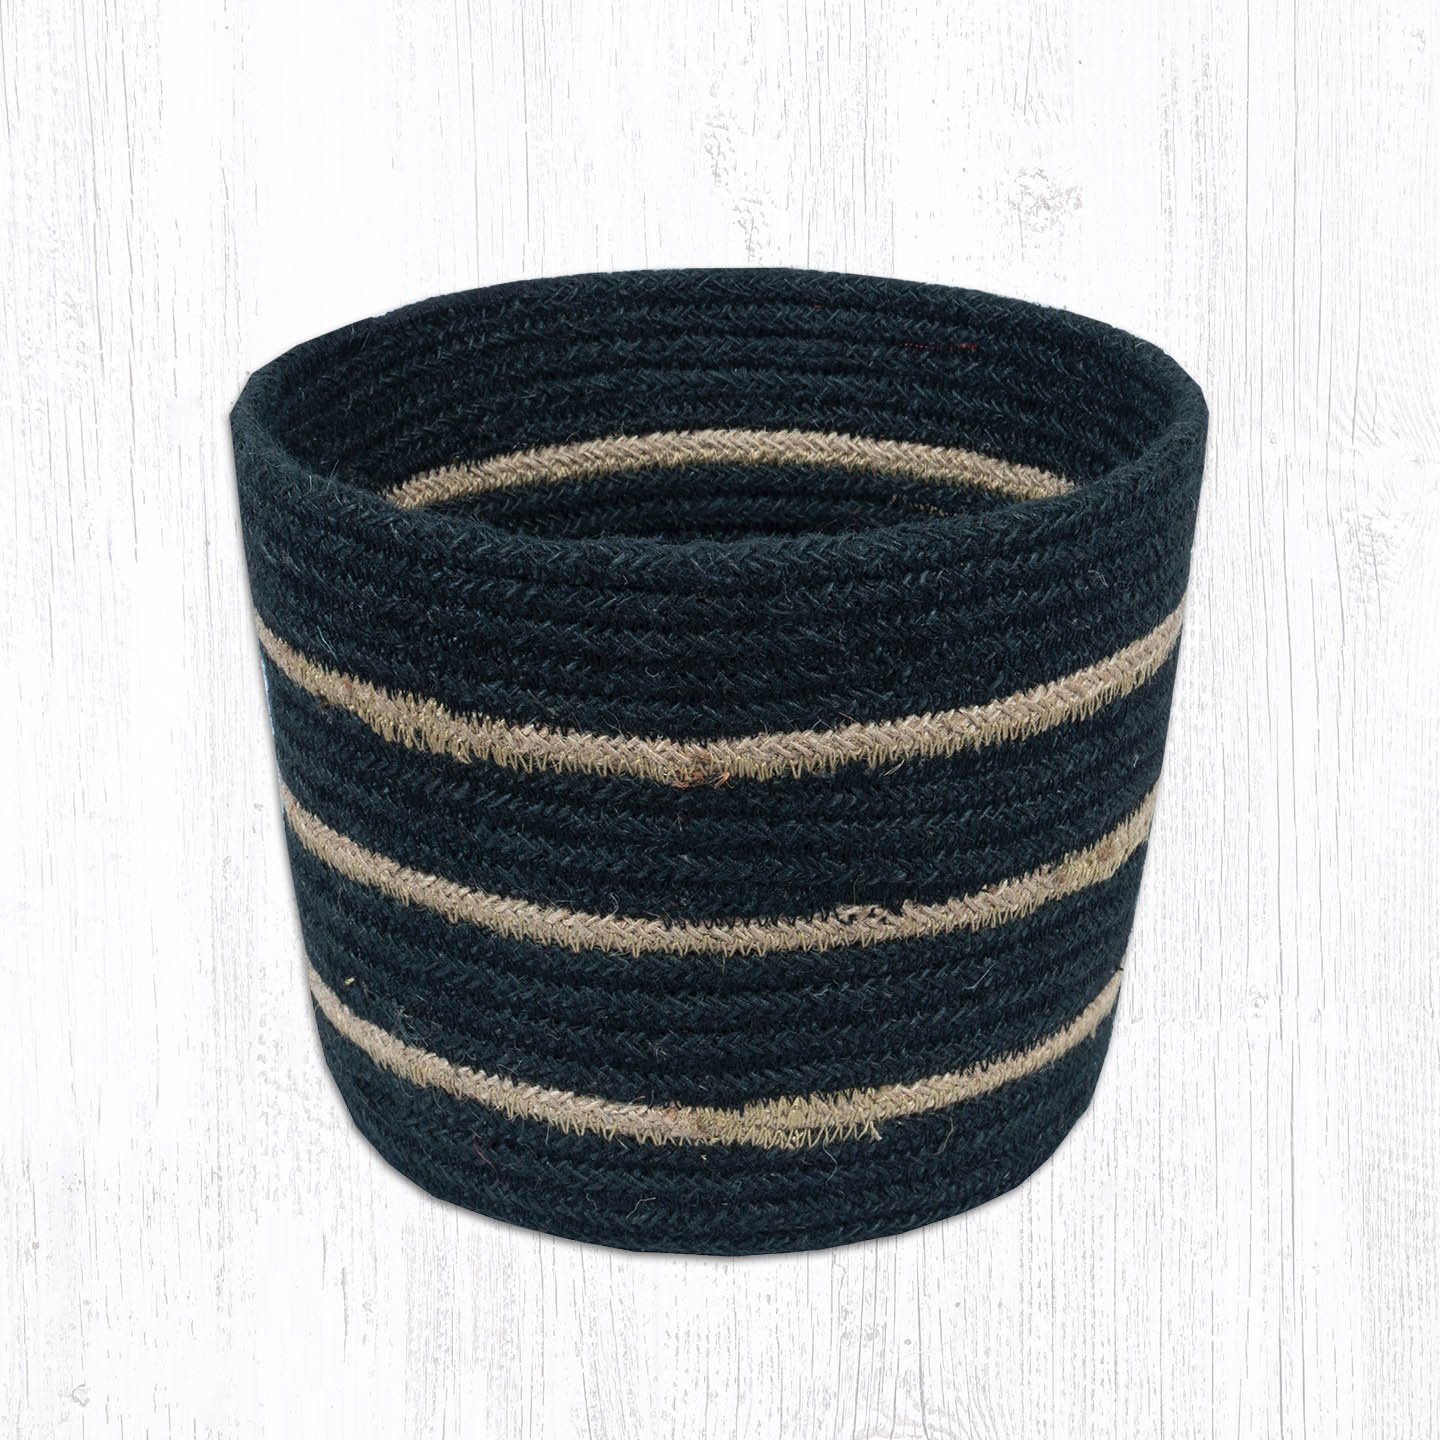 Black Round Basket 6 in. by 7 in.